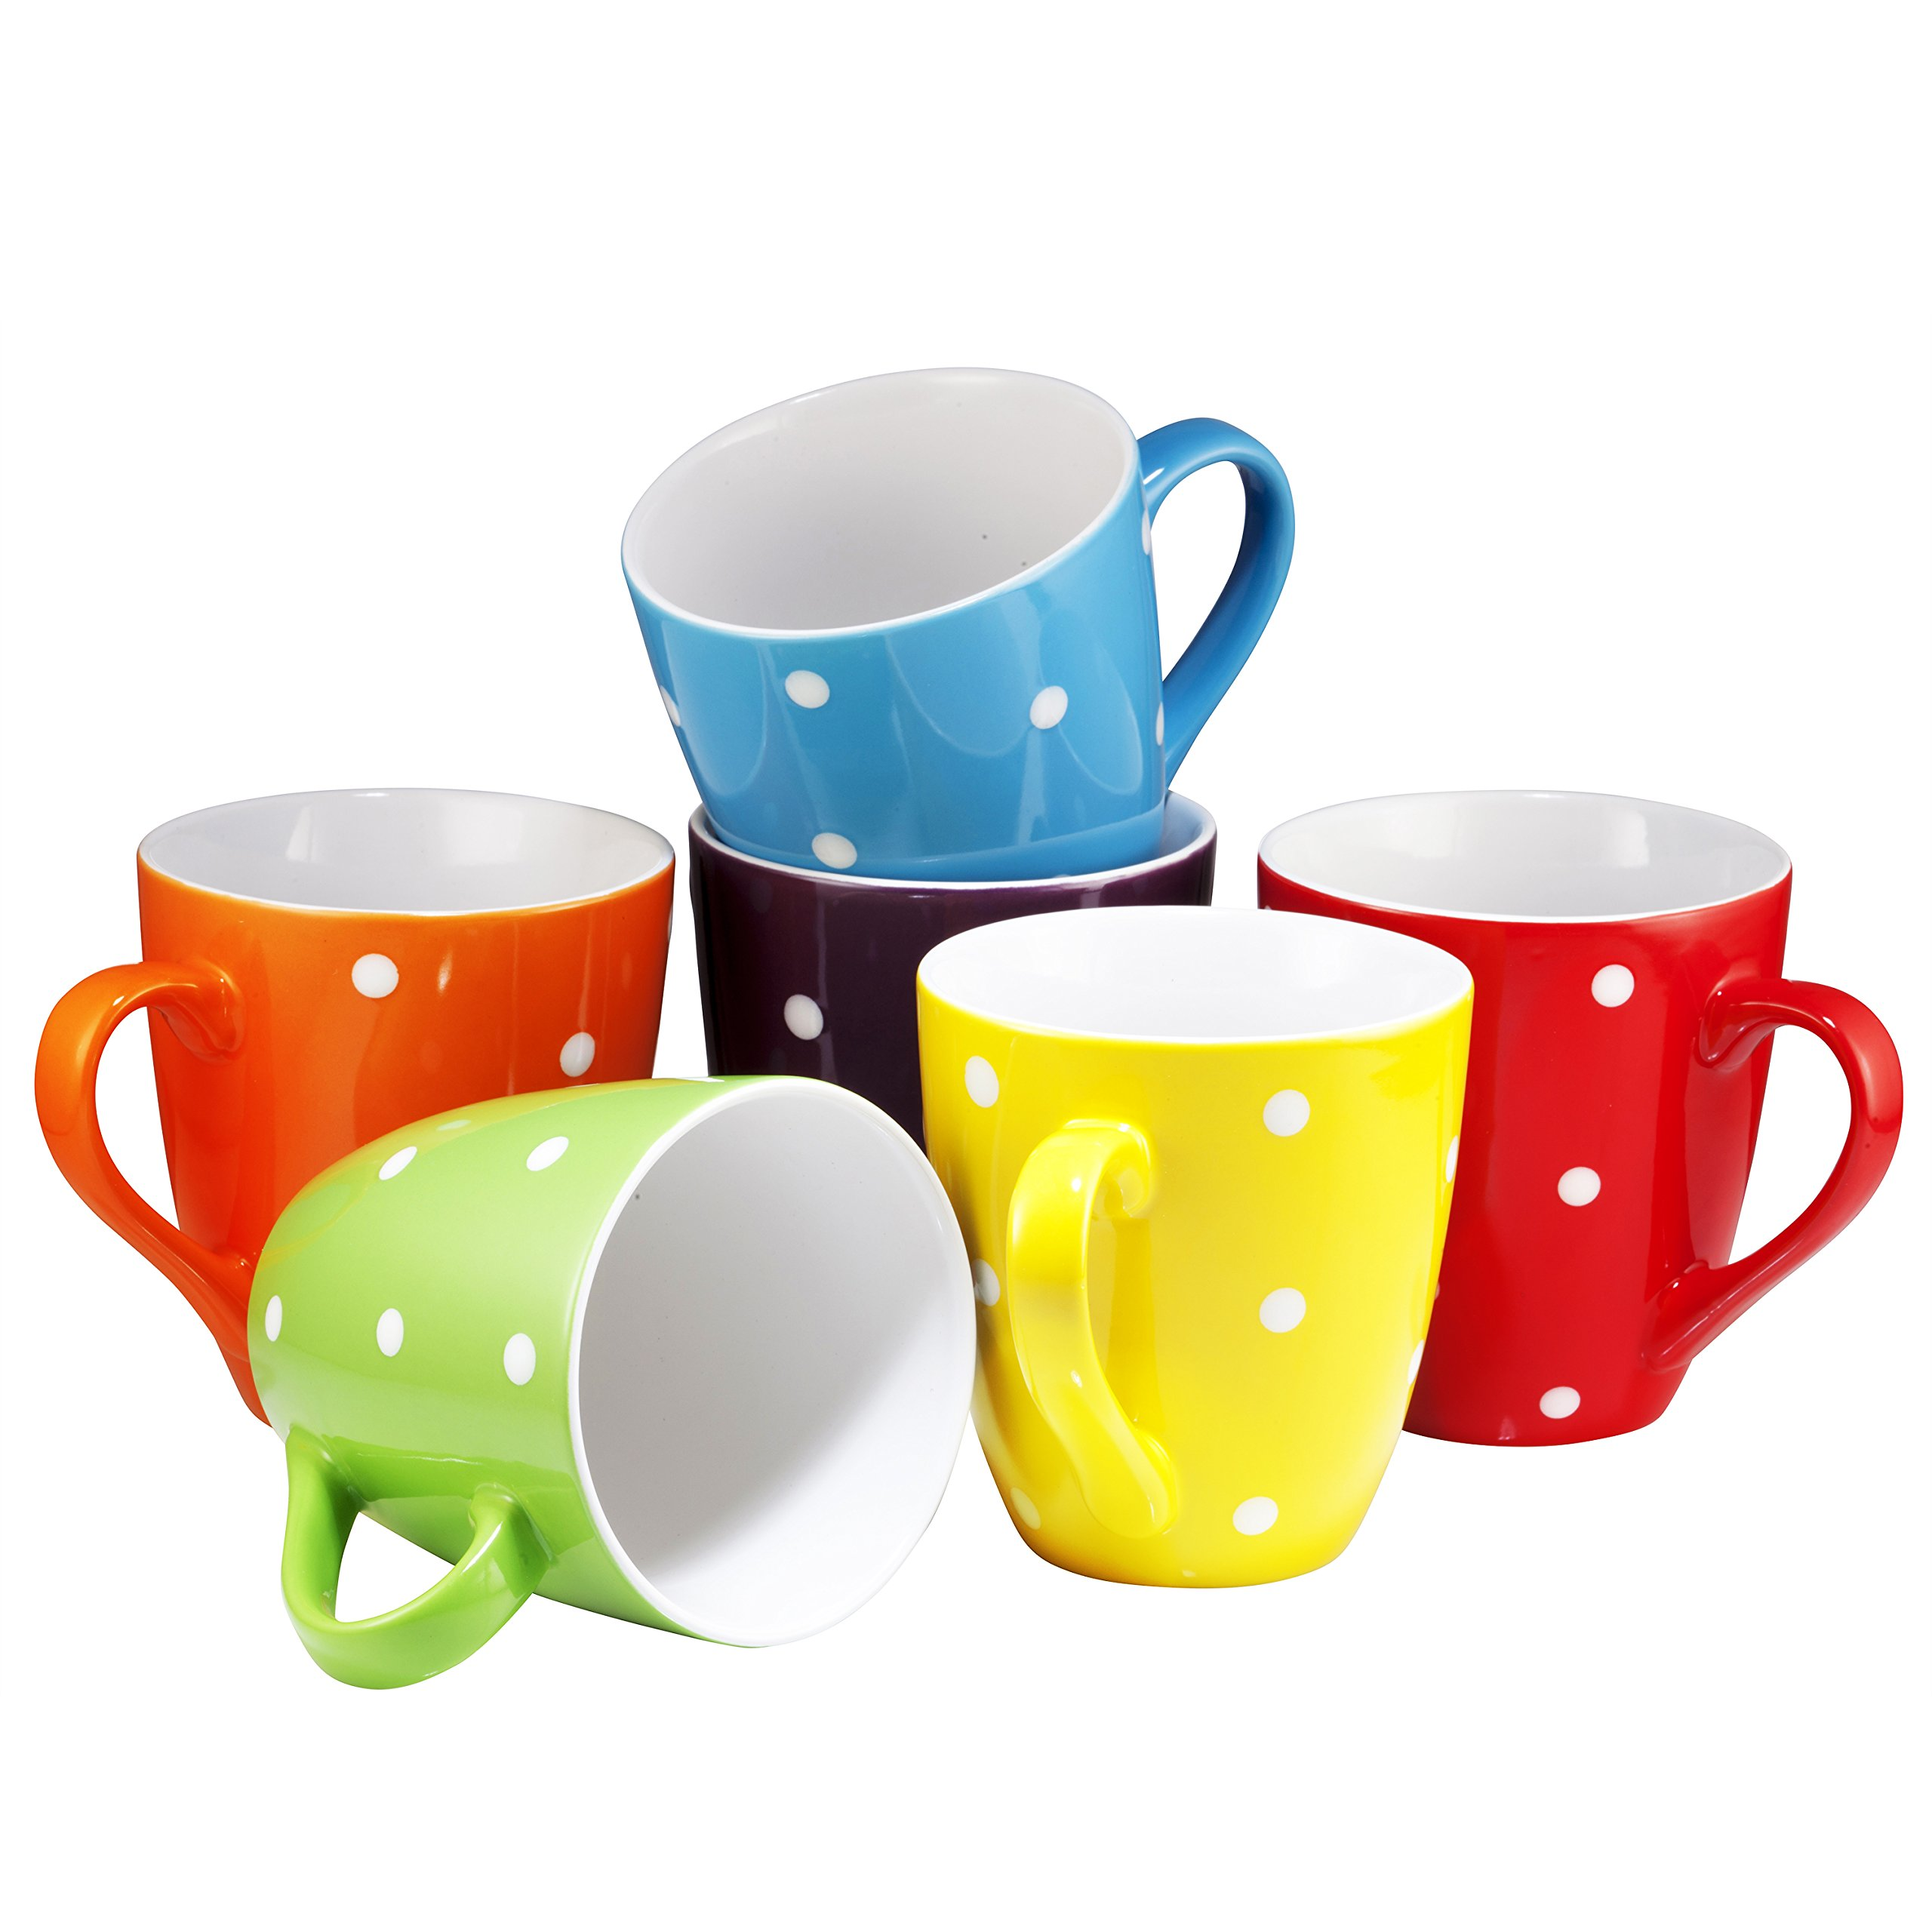 Coffee Mug Set Set of 6 Large-sized 16 Ounce Ceramic Coffee Mugs Restaurant Coffee Mugs By Bruntmor (Polka Dot)